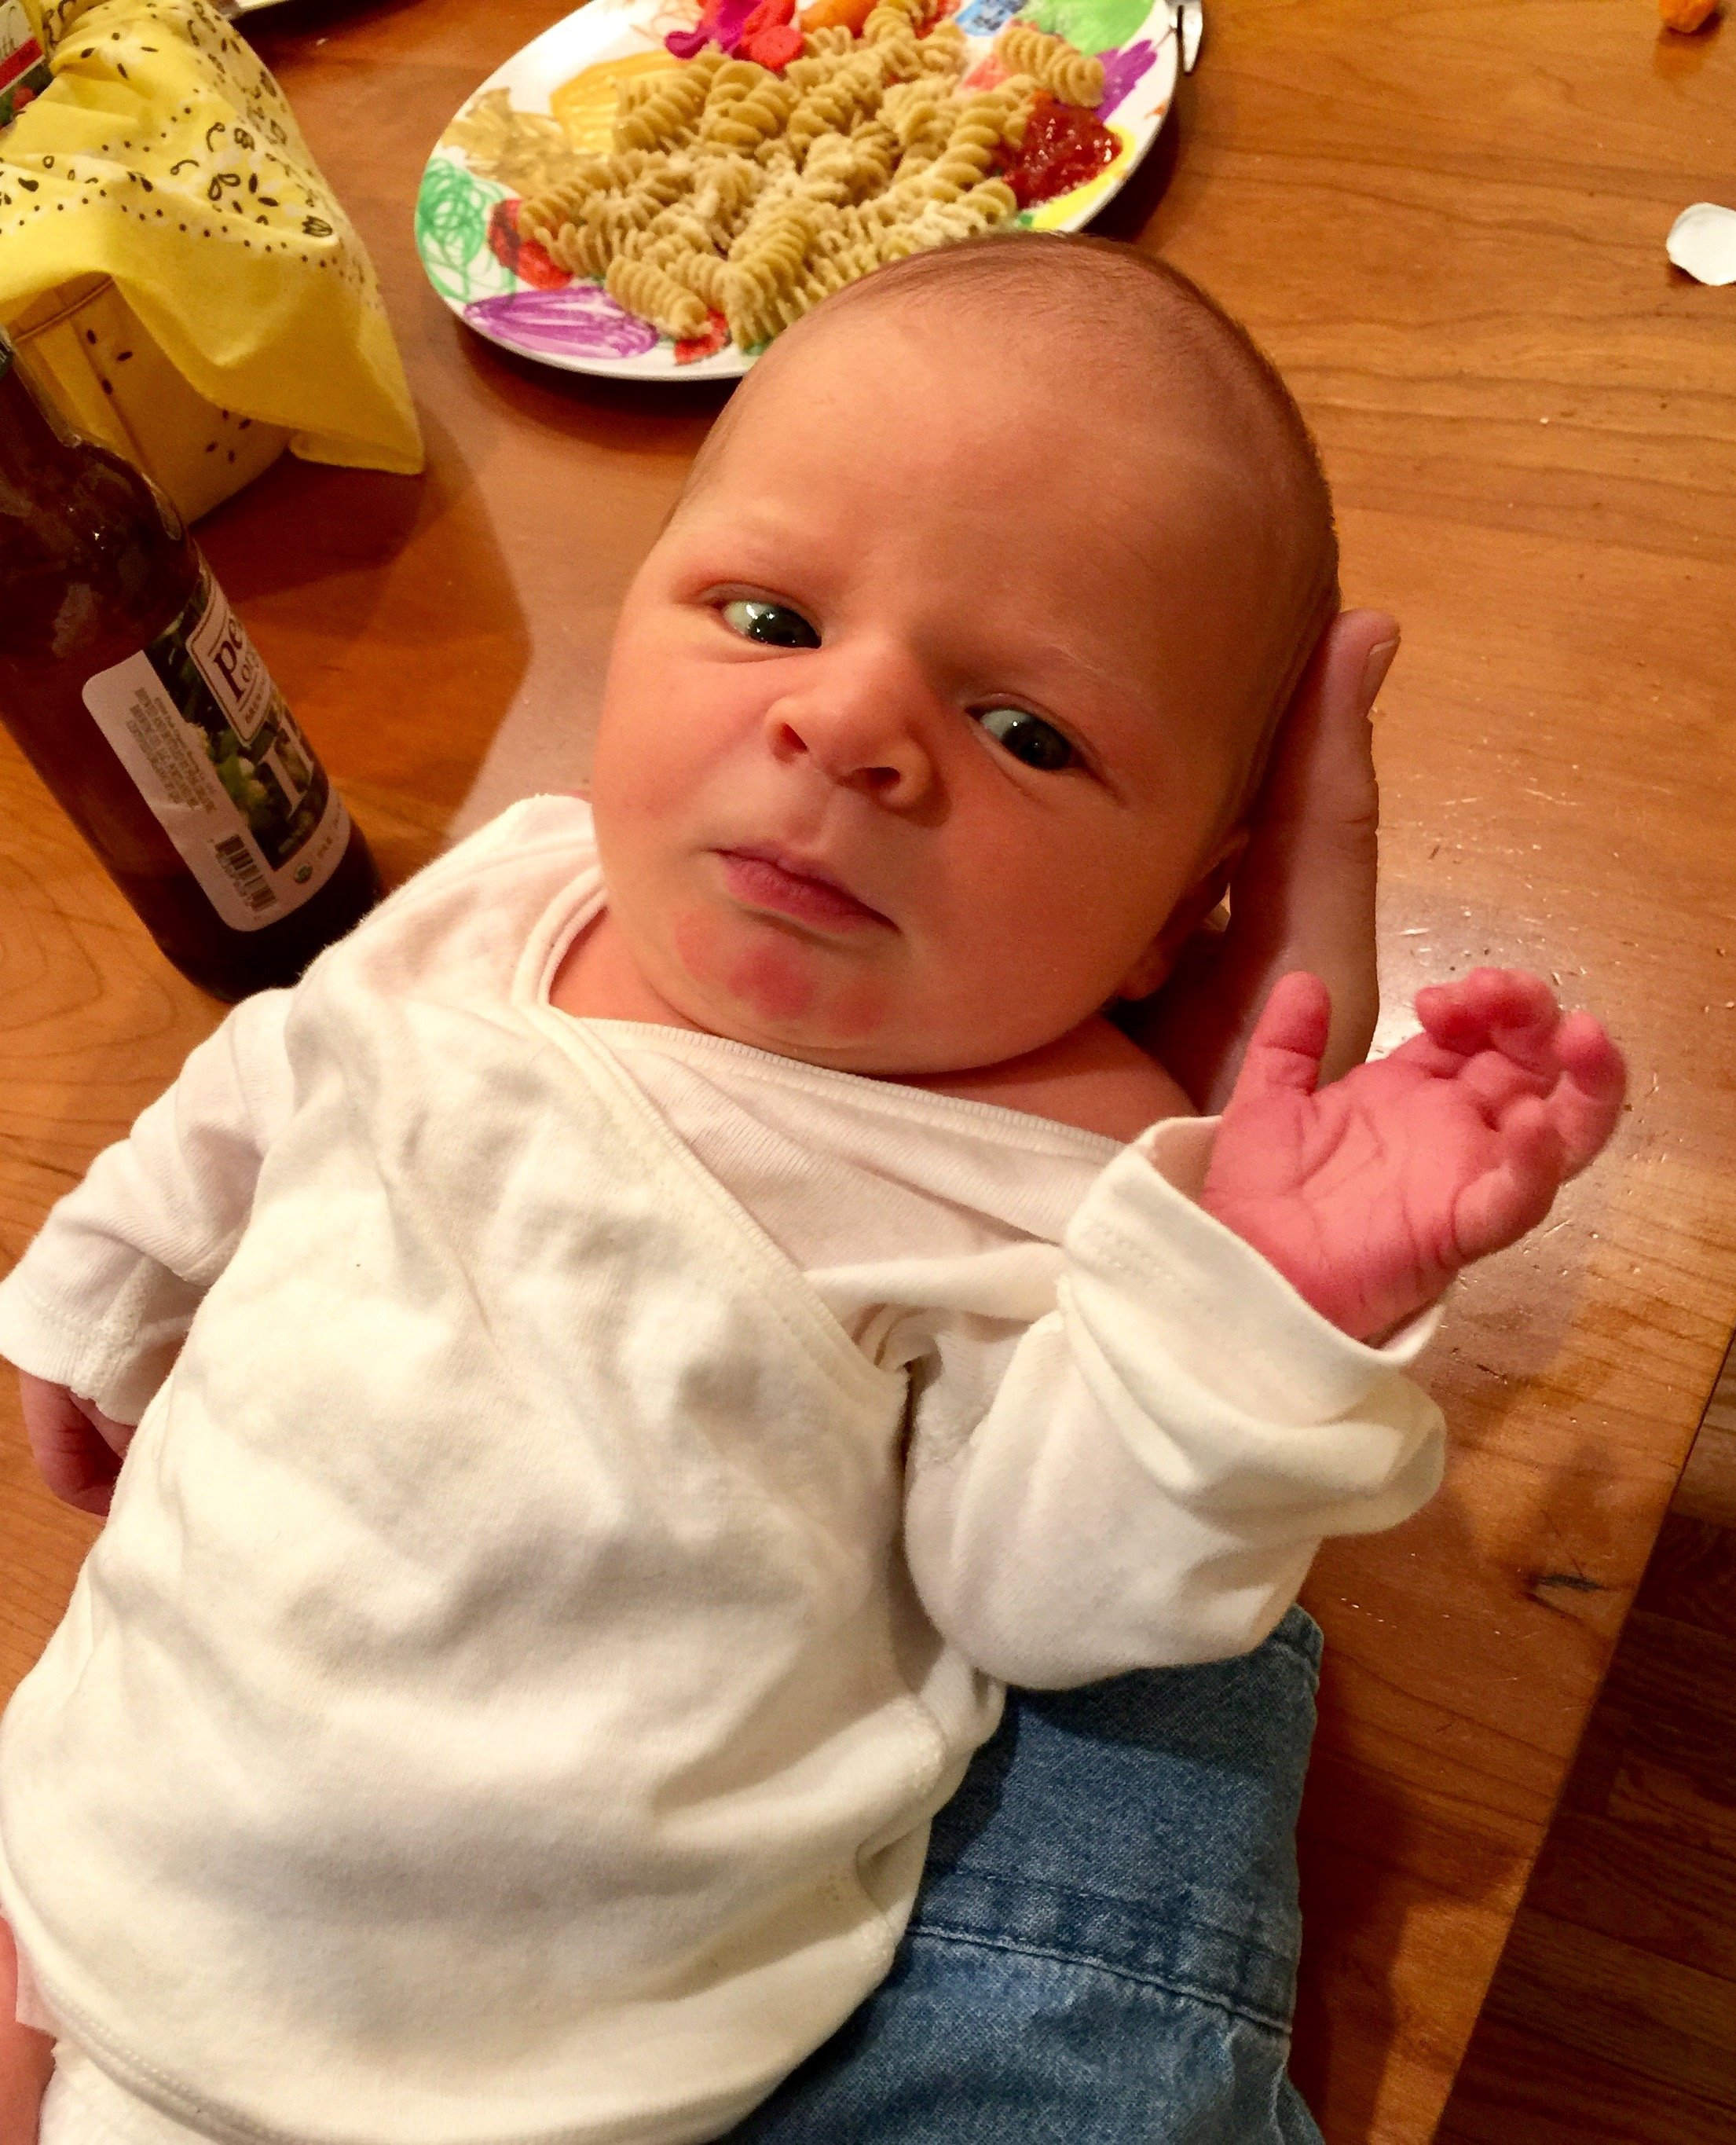 4-day-old new grandson